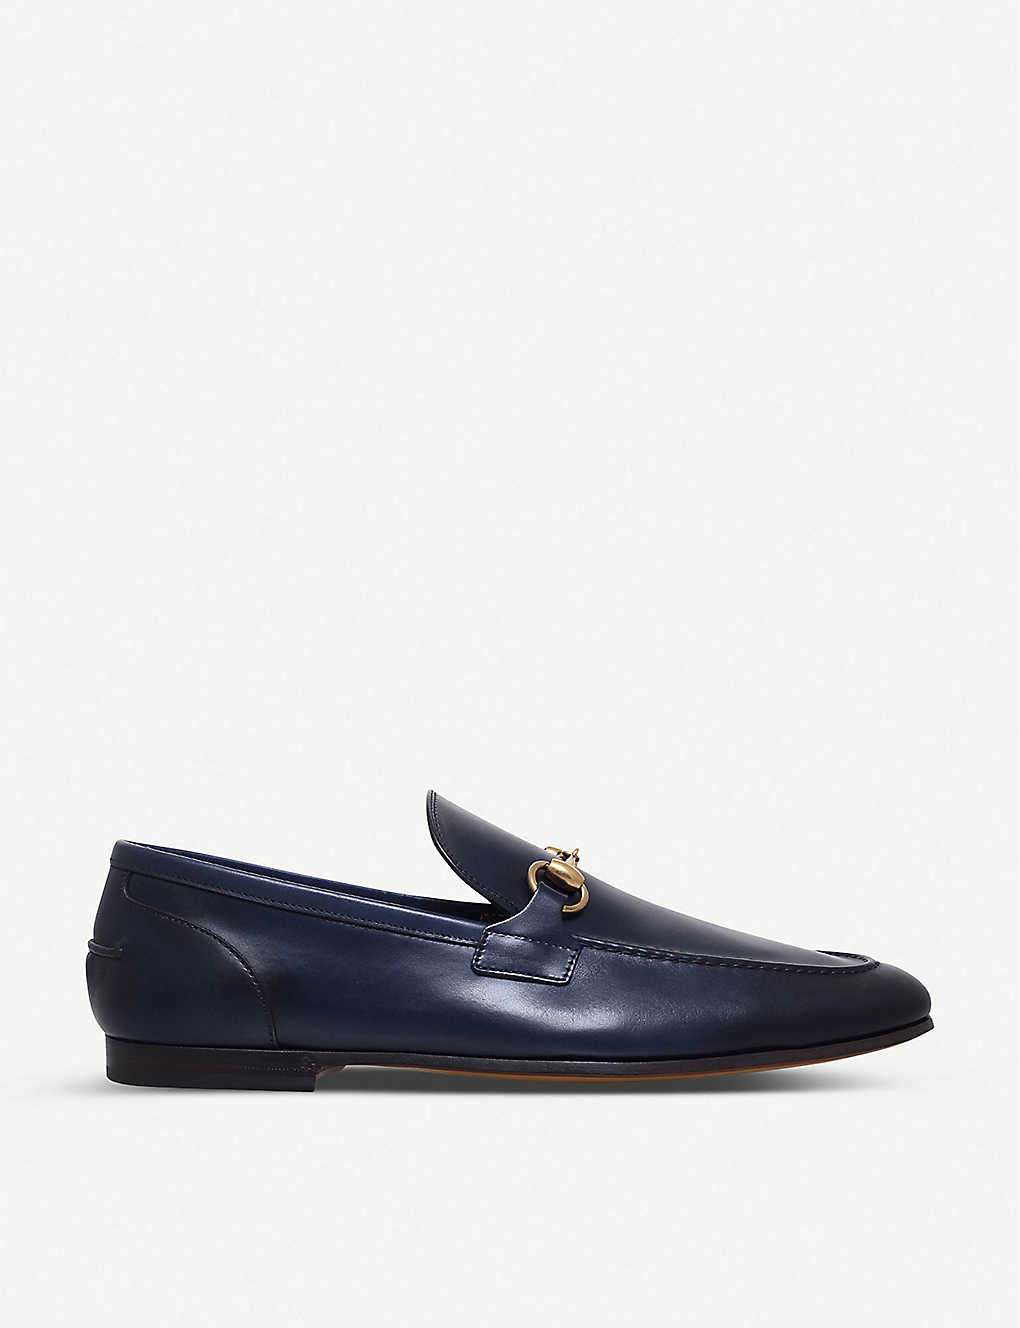 0371ea1c8 GUCCI - Jordaan leather loafers | Selfridges.com